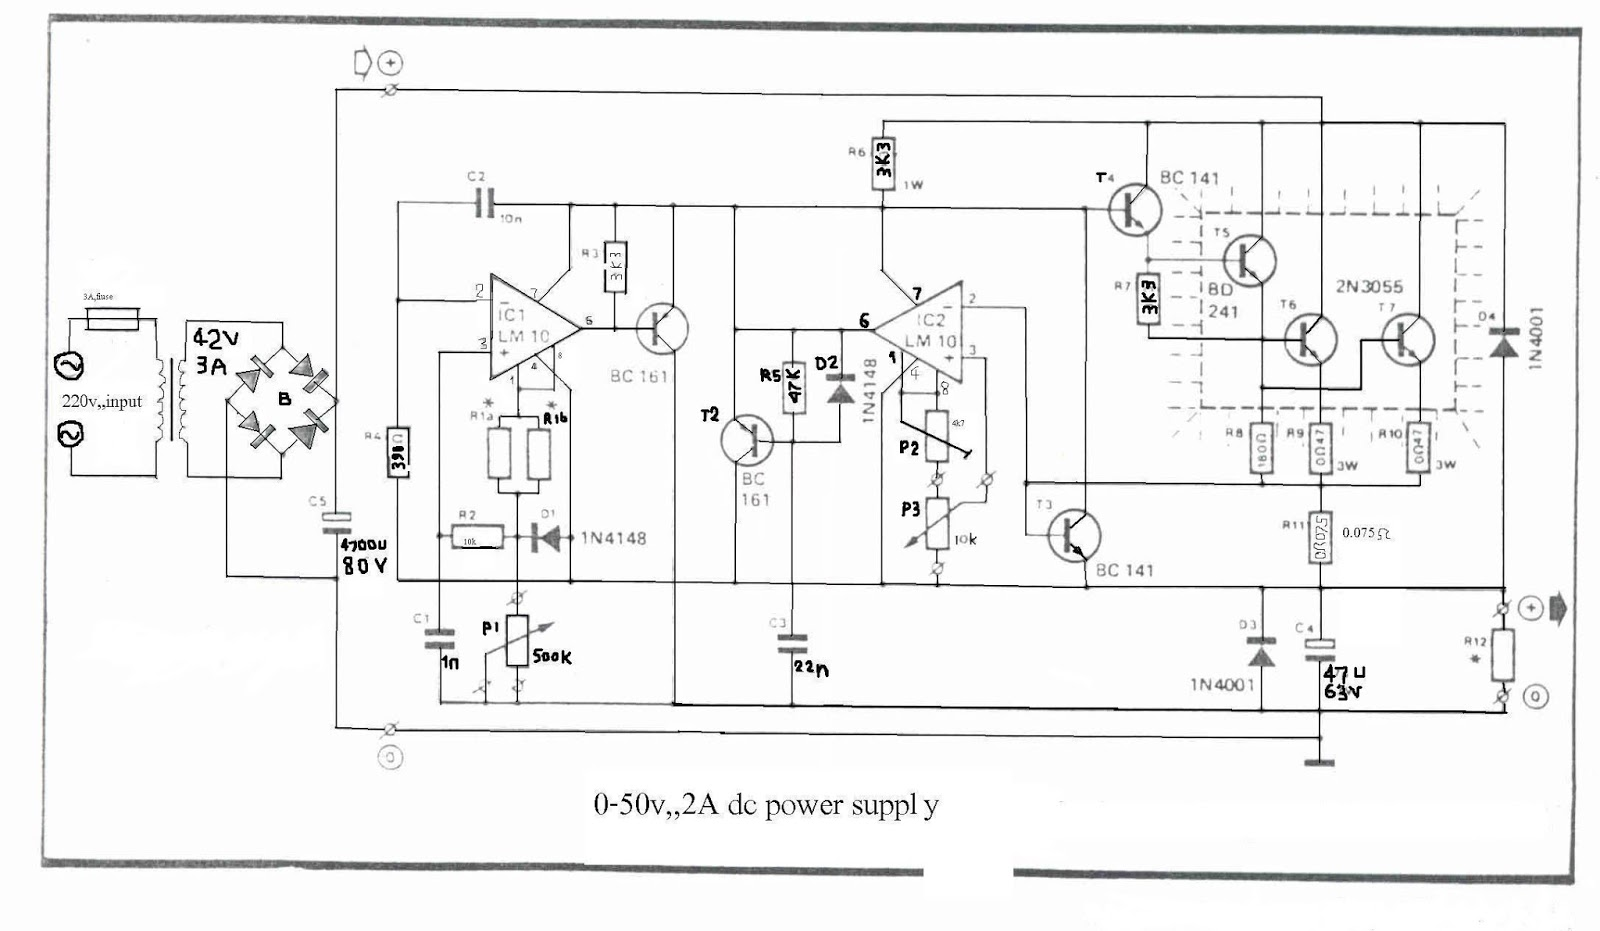 Voltage Free Contact Wiring Diagram 2006 Honda Civic Radio Simple 50v 2a Bench Power Supply Circuit